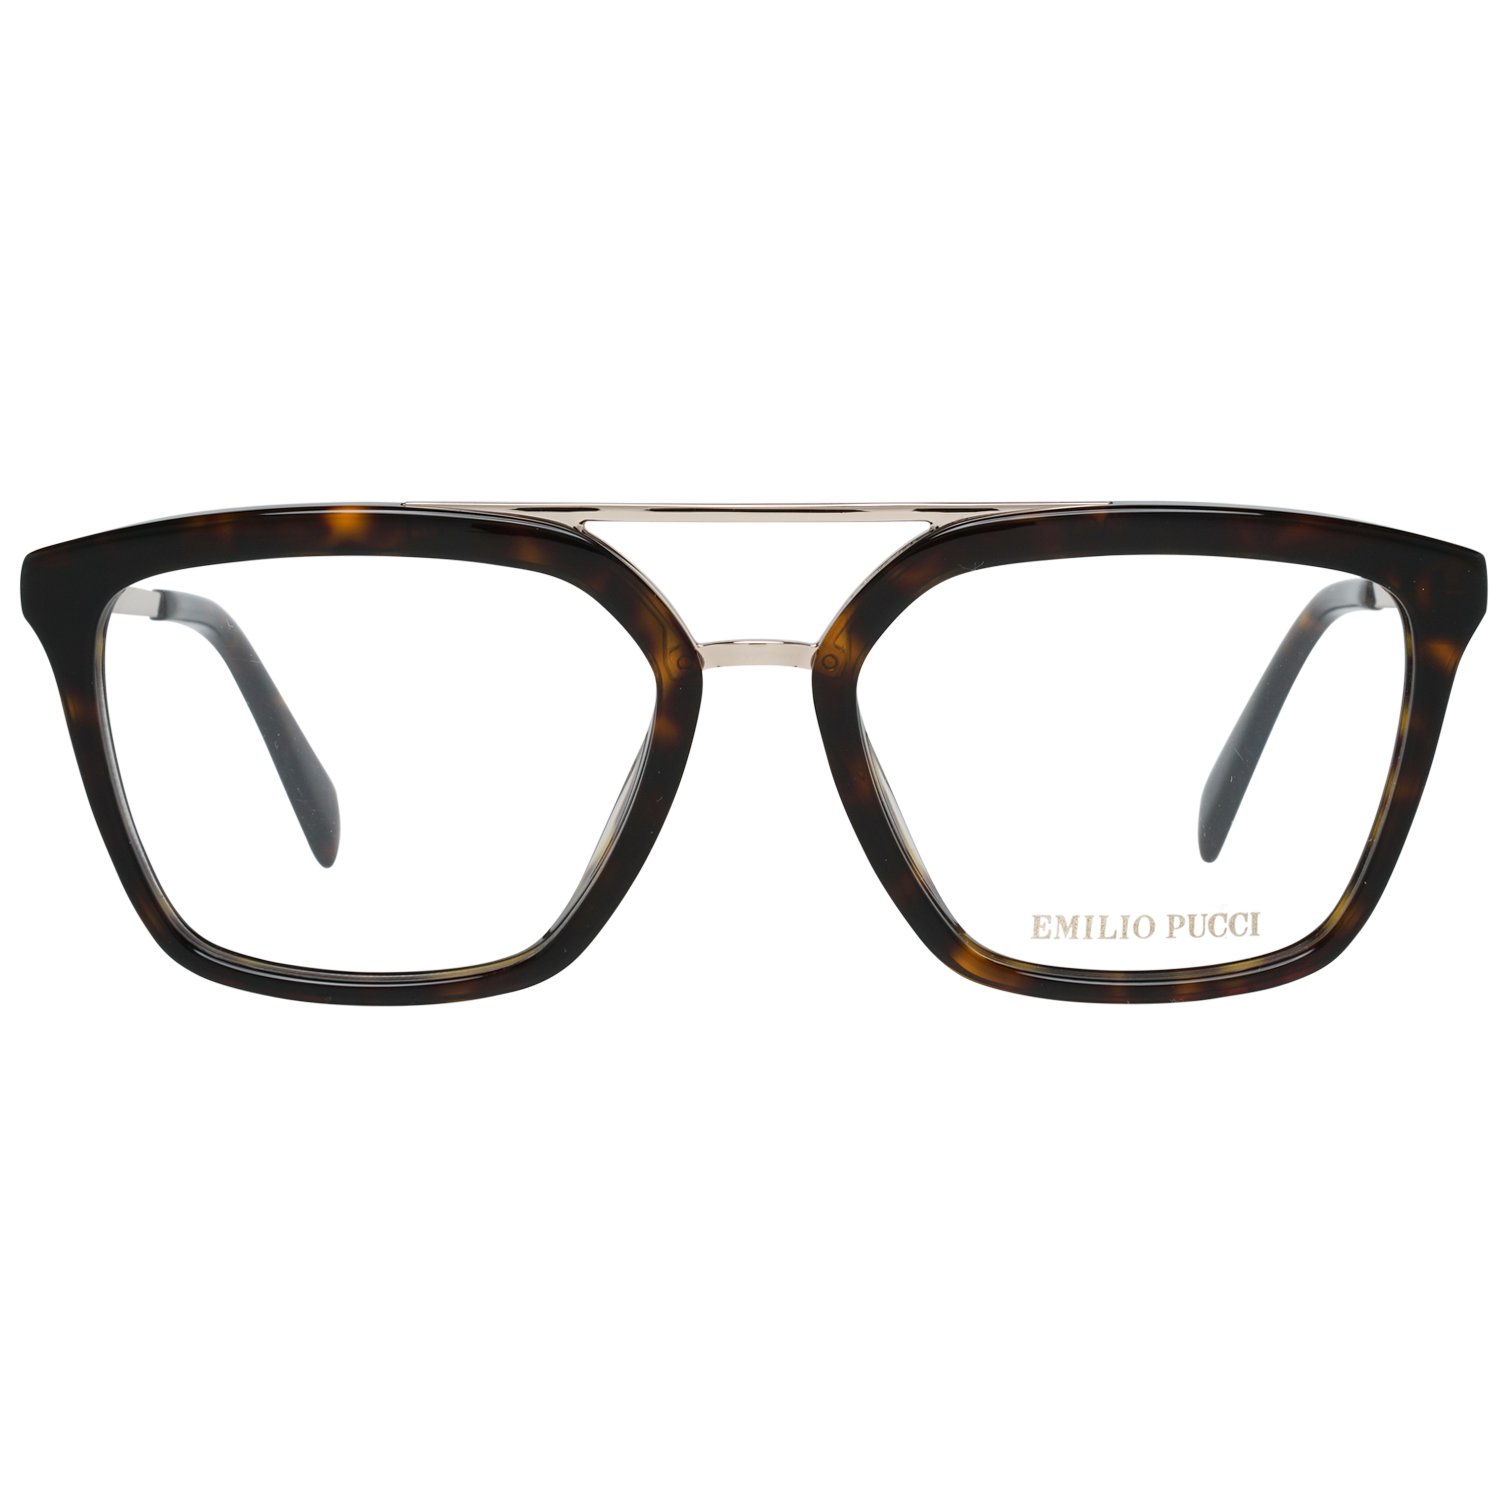 Emilio Pucci Optical Frame EP5071 052 52 Women Brown